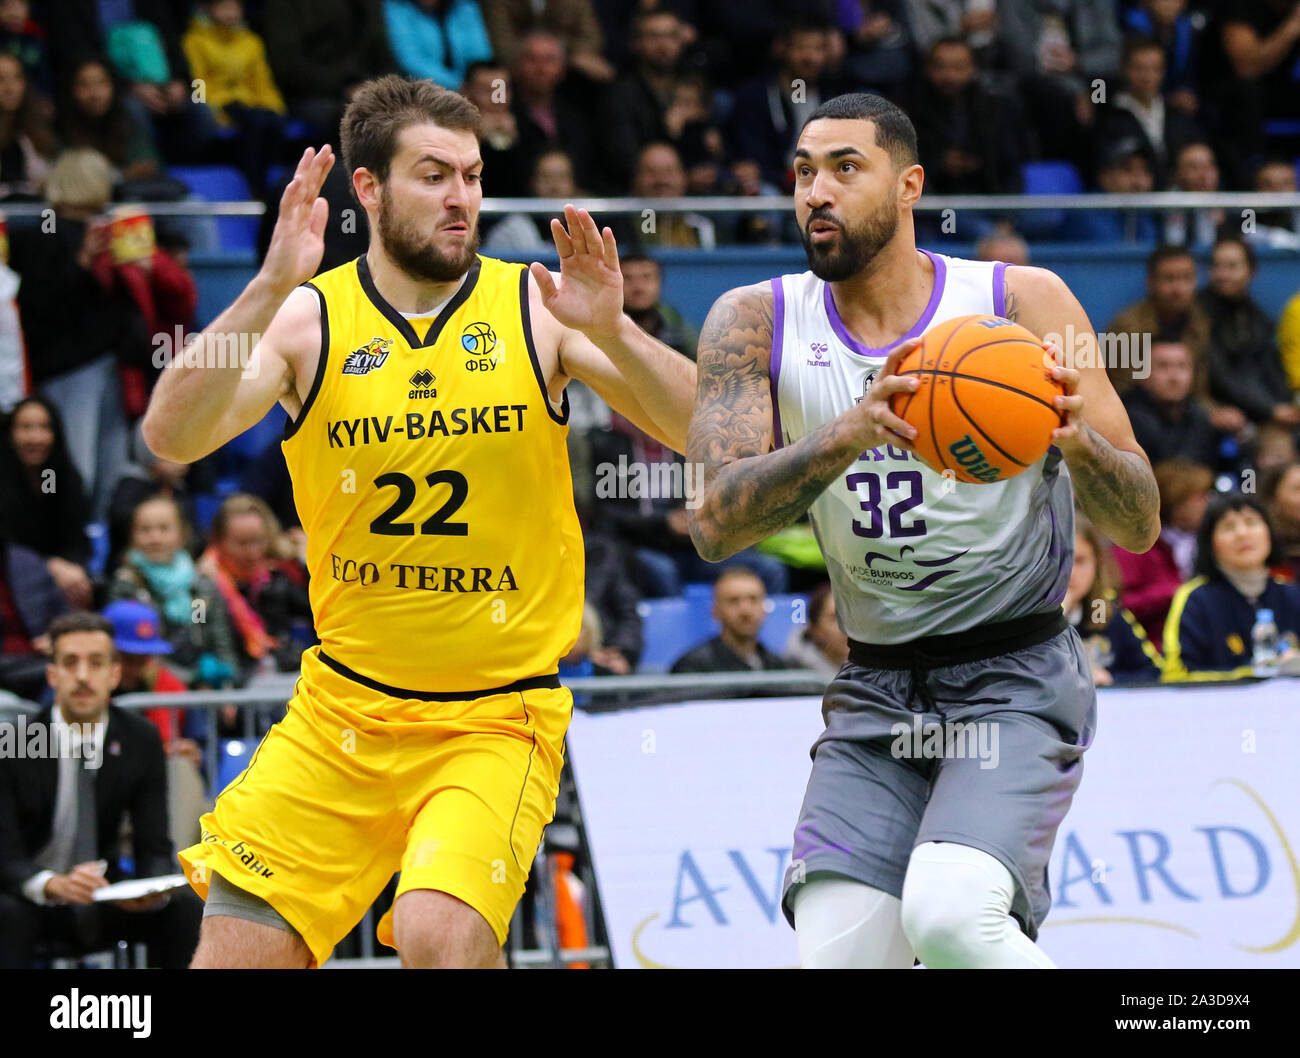 KYIV, UKRAINE - SEPTEMBER 26, 2019: Viacheslav Petrov of BC Kyiv Basket (L) and Augusto Lima of San Pablo Burgos in action during their FIBA Basketball Champions League Qualifiers game Stock Photo